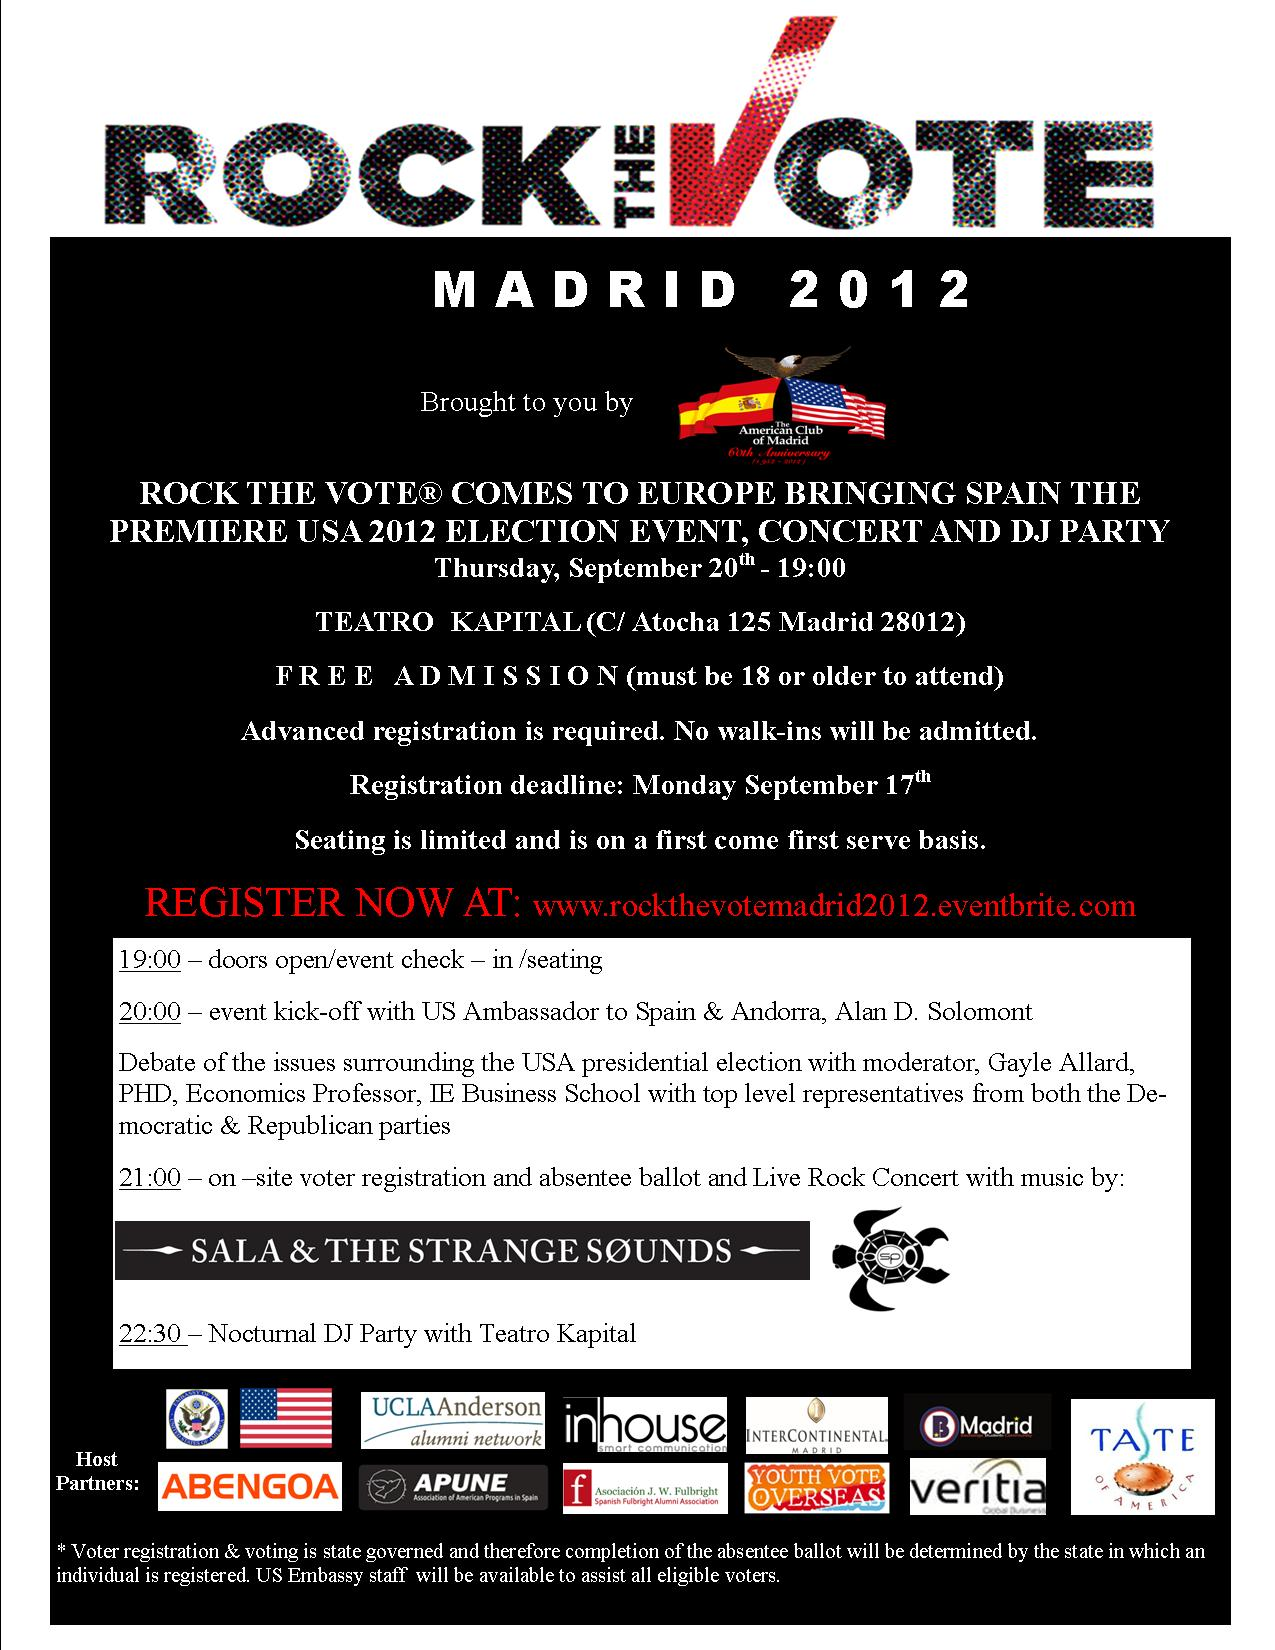 Rock the Vote in Madrid!